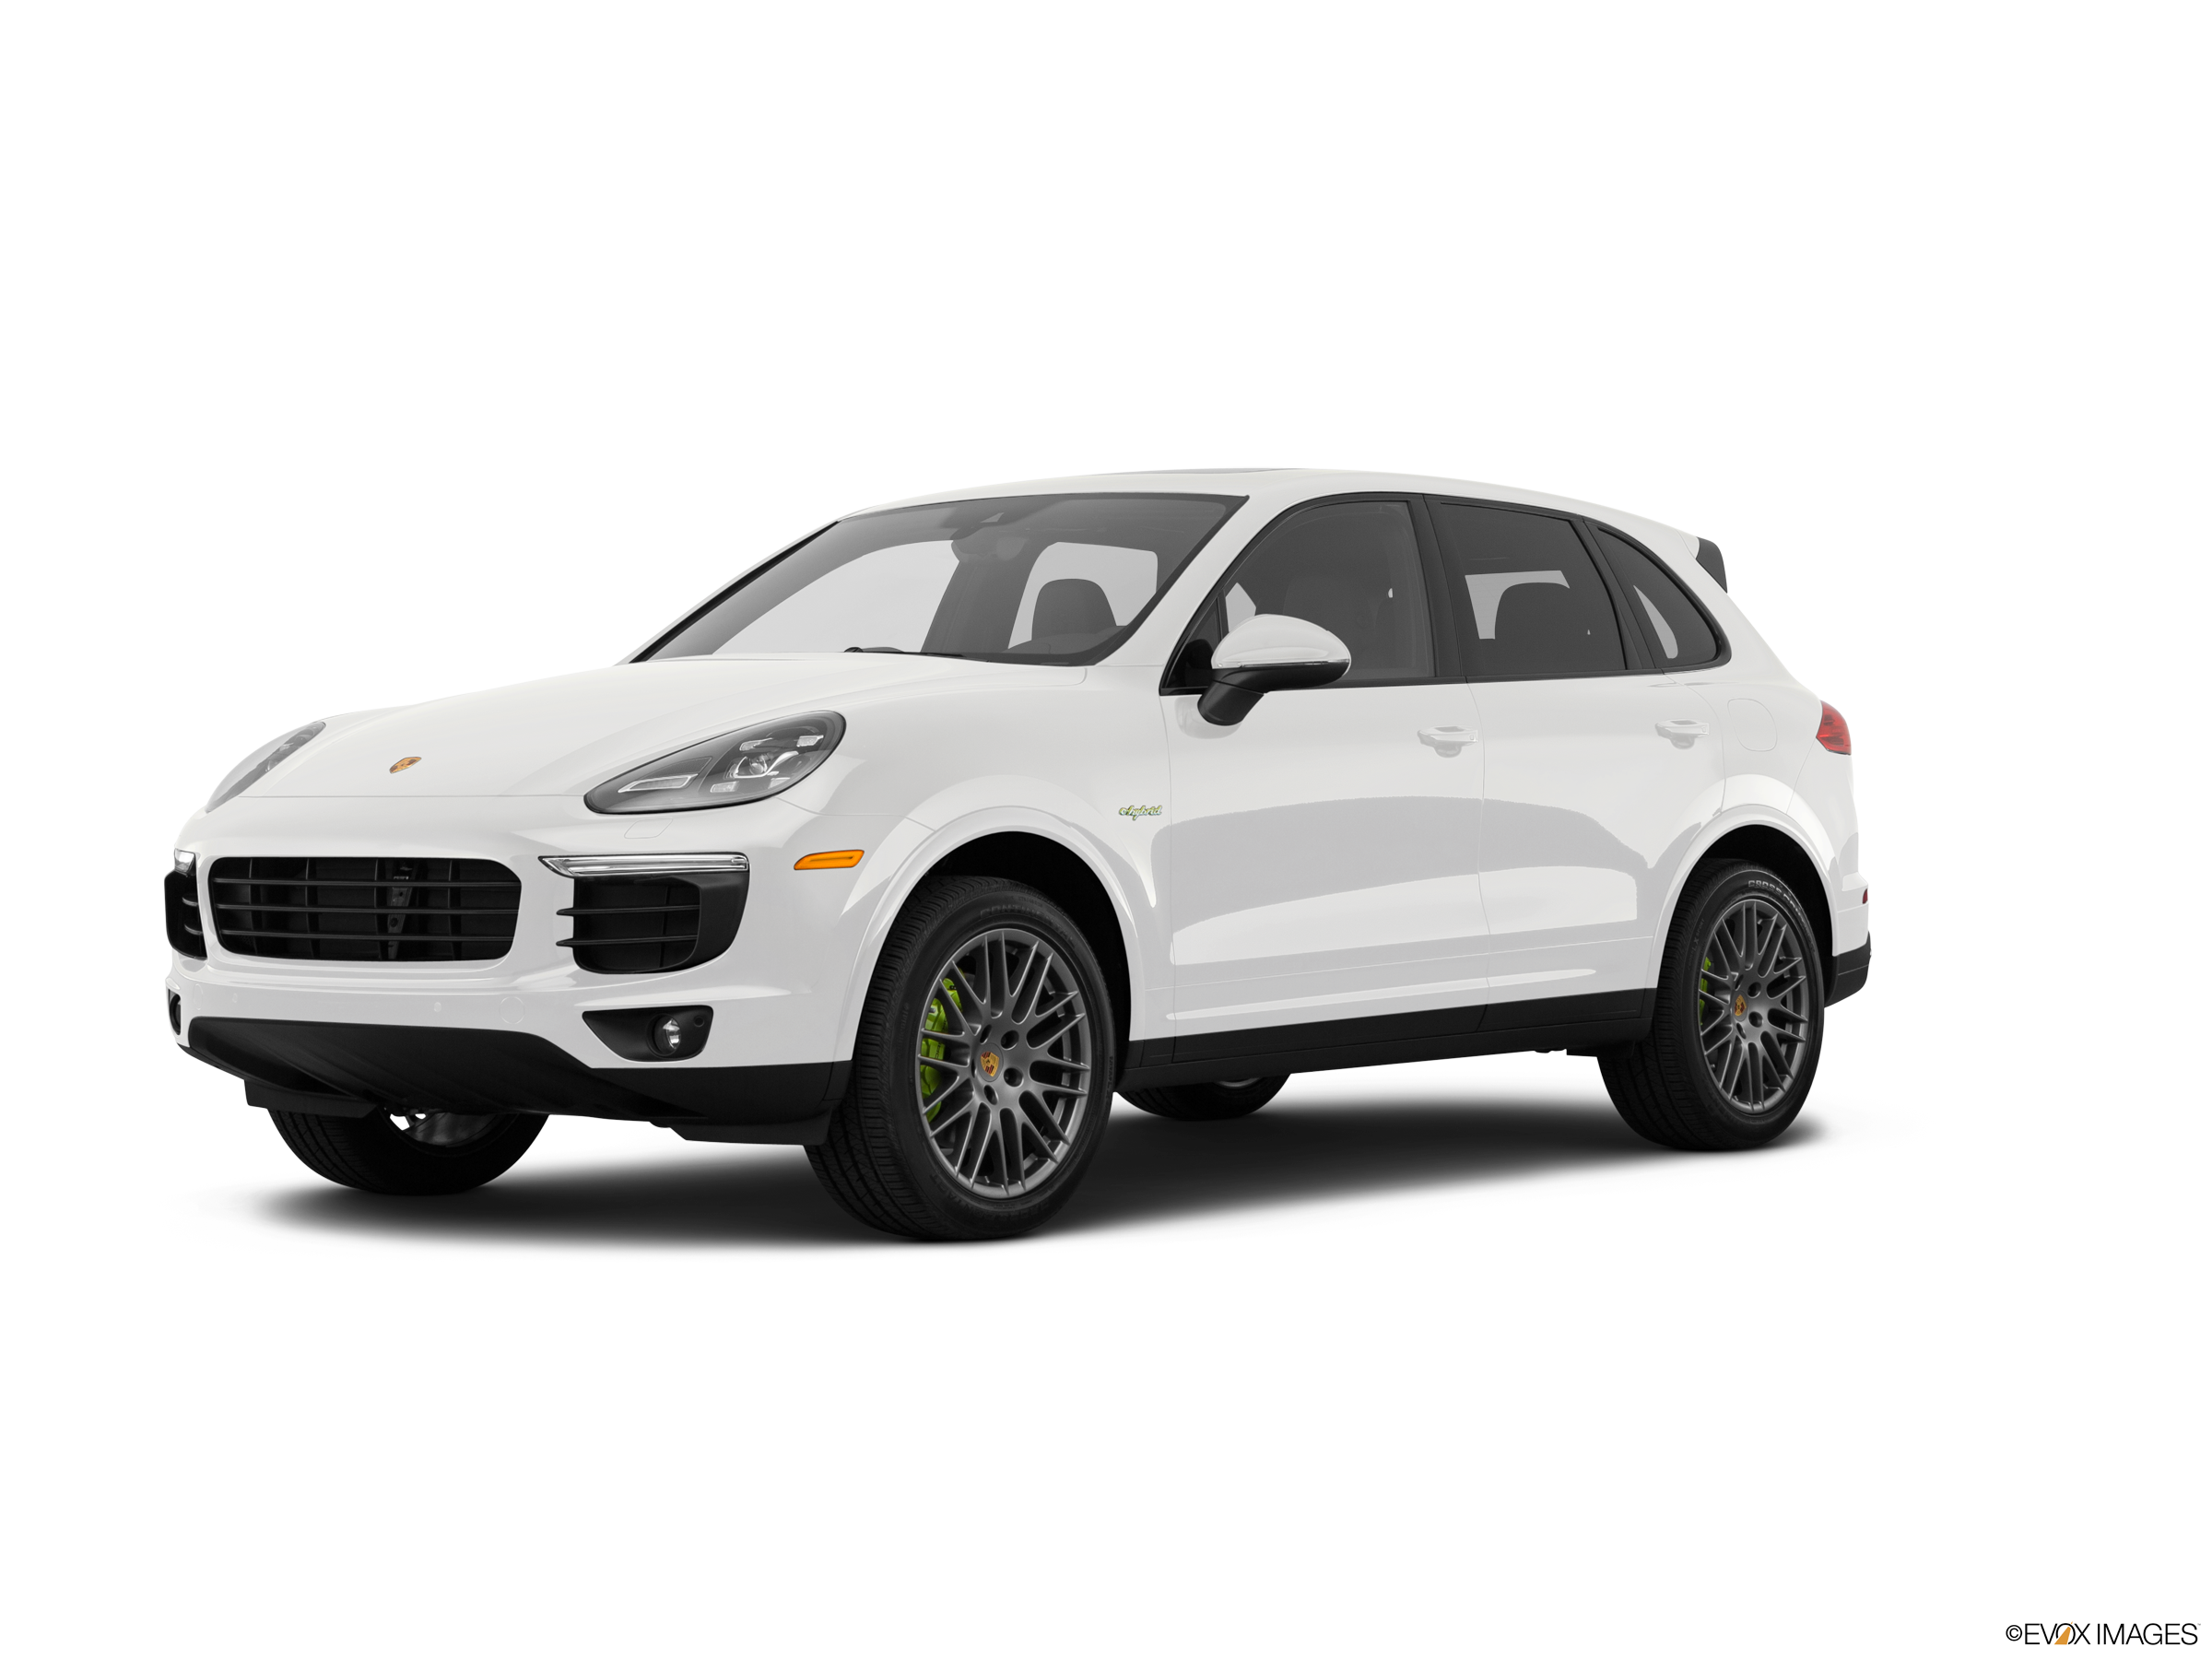 Highest Horsepower Electric Cars of 2017 - 2017 Porsche Cayenne